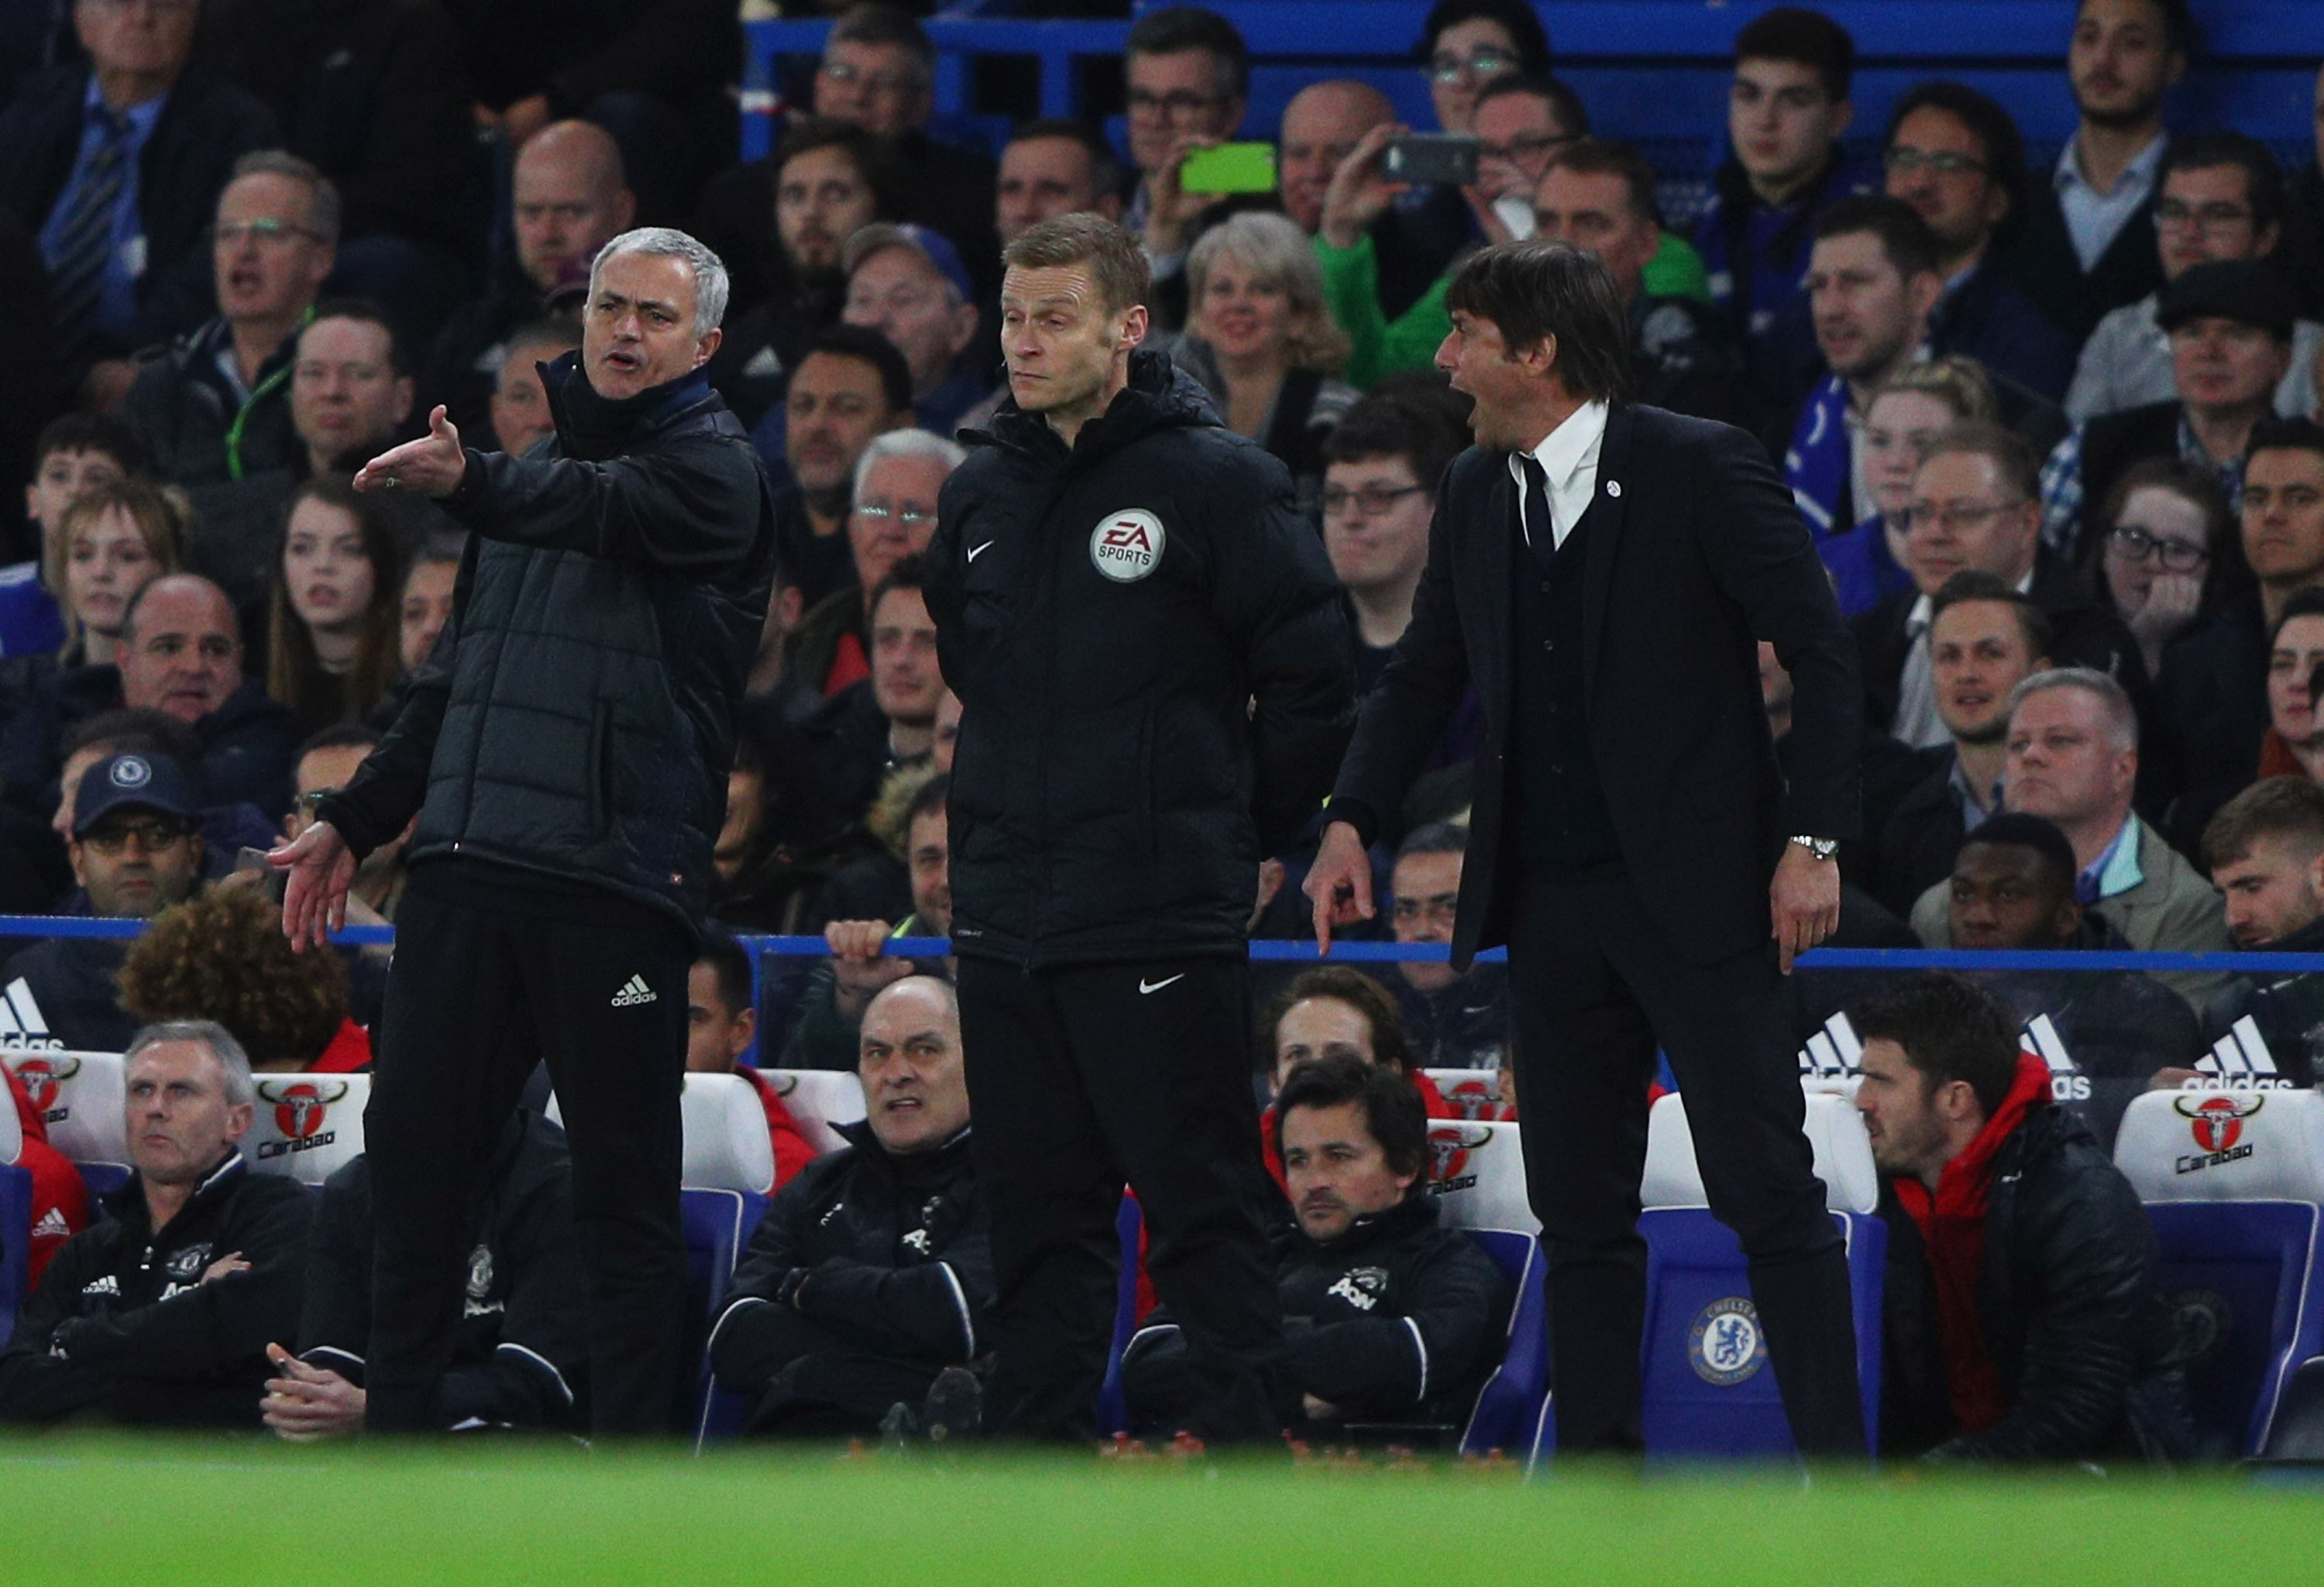 Antonio Conte Says He 'Won't Forget' Jose Mourinho's 'Serious' Comments